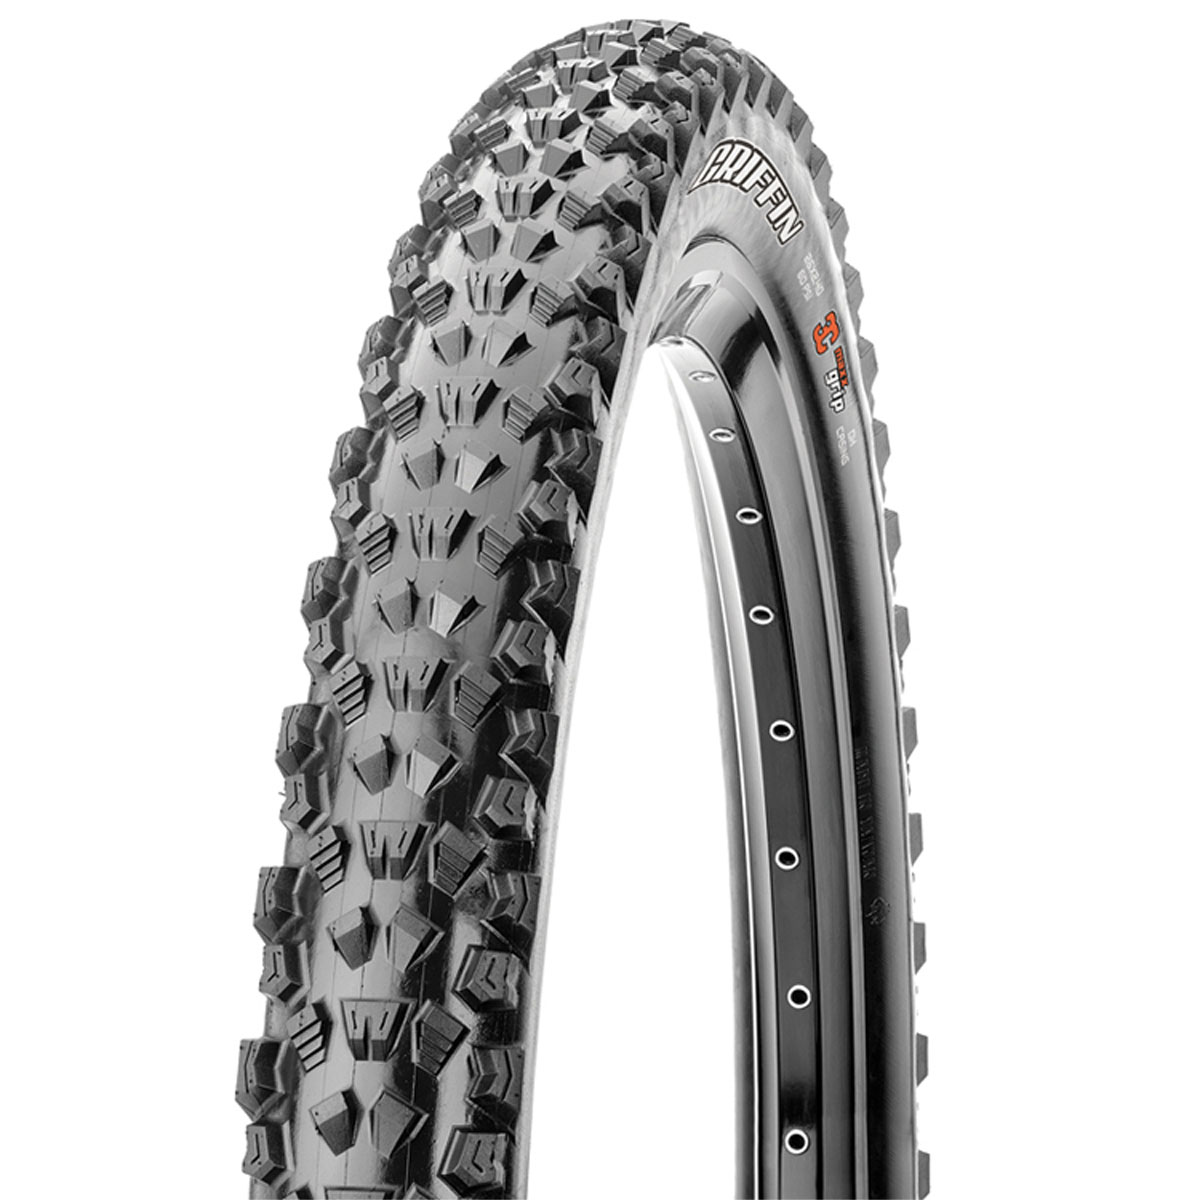 Maxxis Griffin Triple Compound Dual Ply Wire Bead Downhill Bike Tire